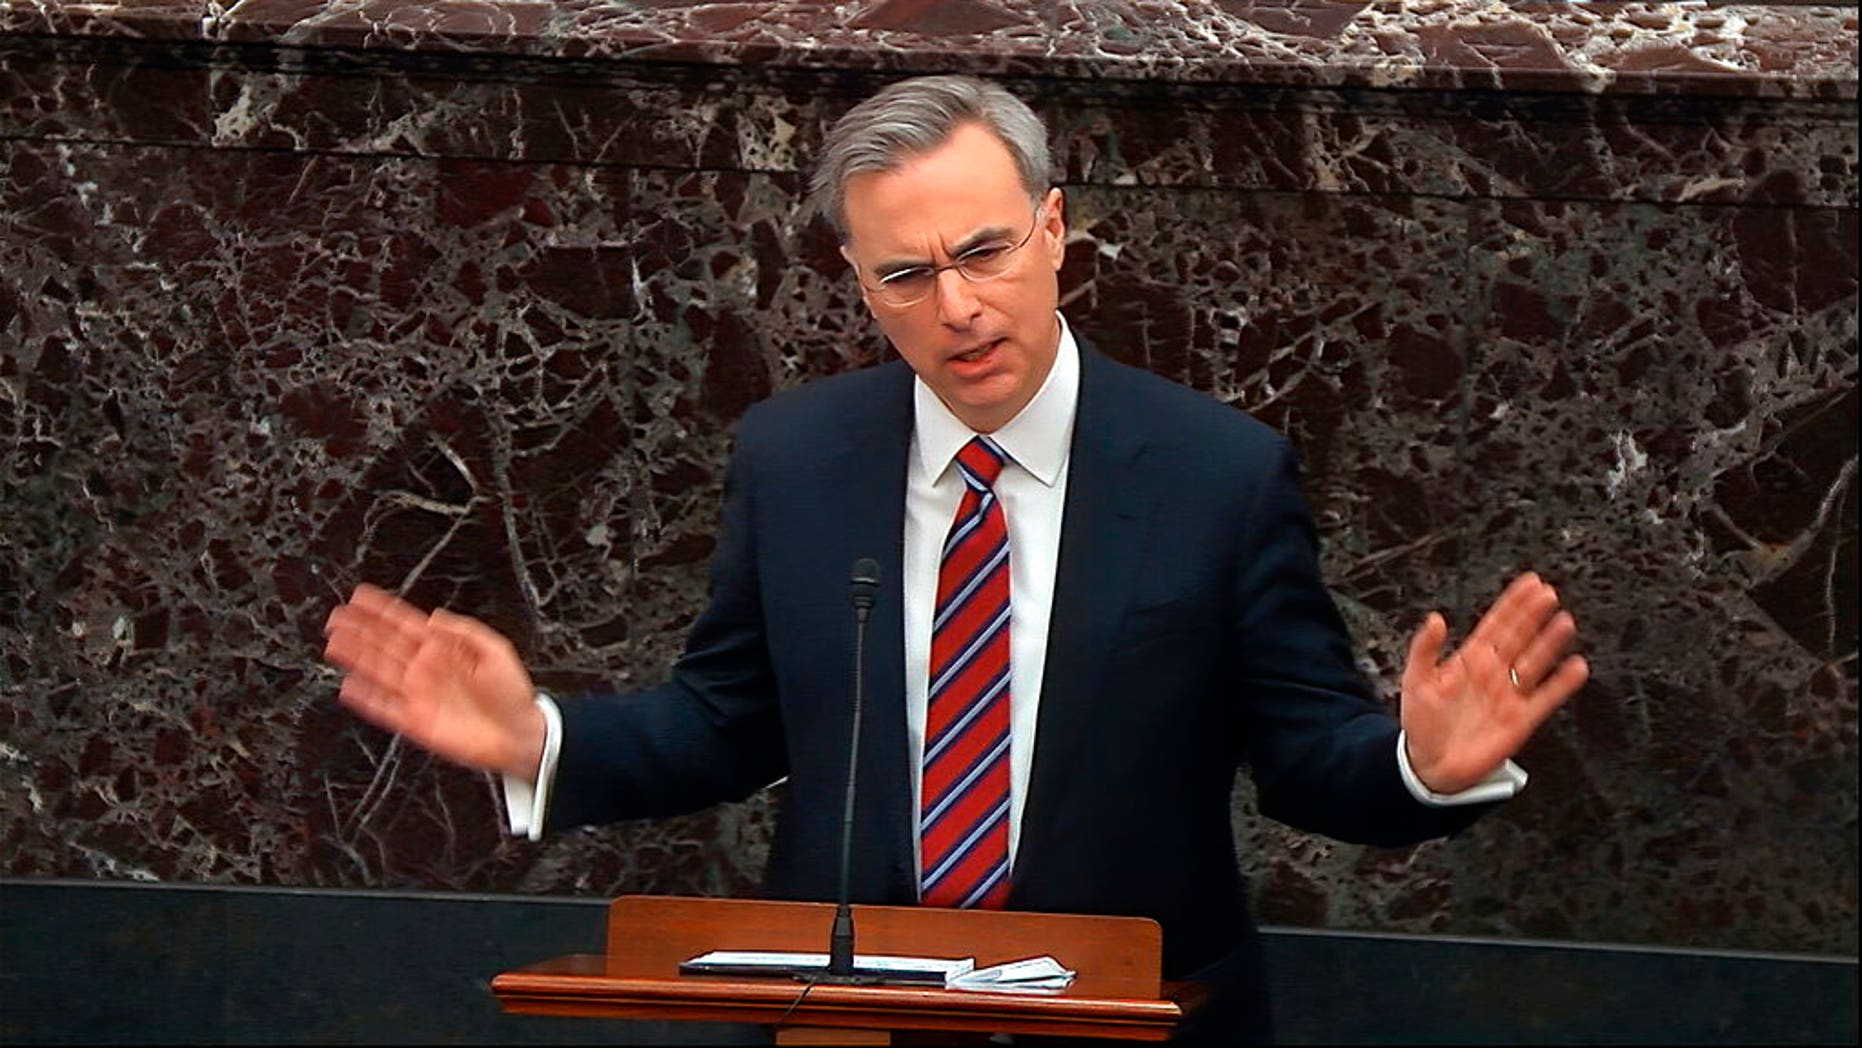 White House counsel Pat Cipollone. (Senate Television via AP)